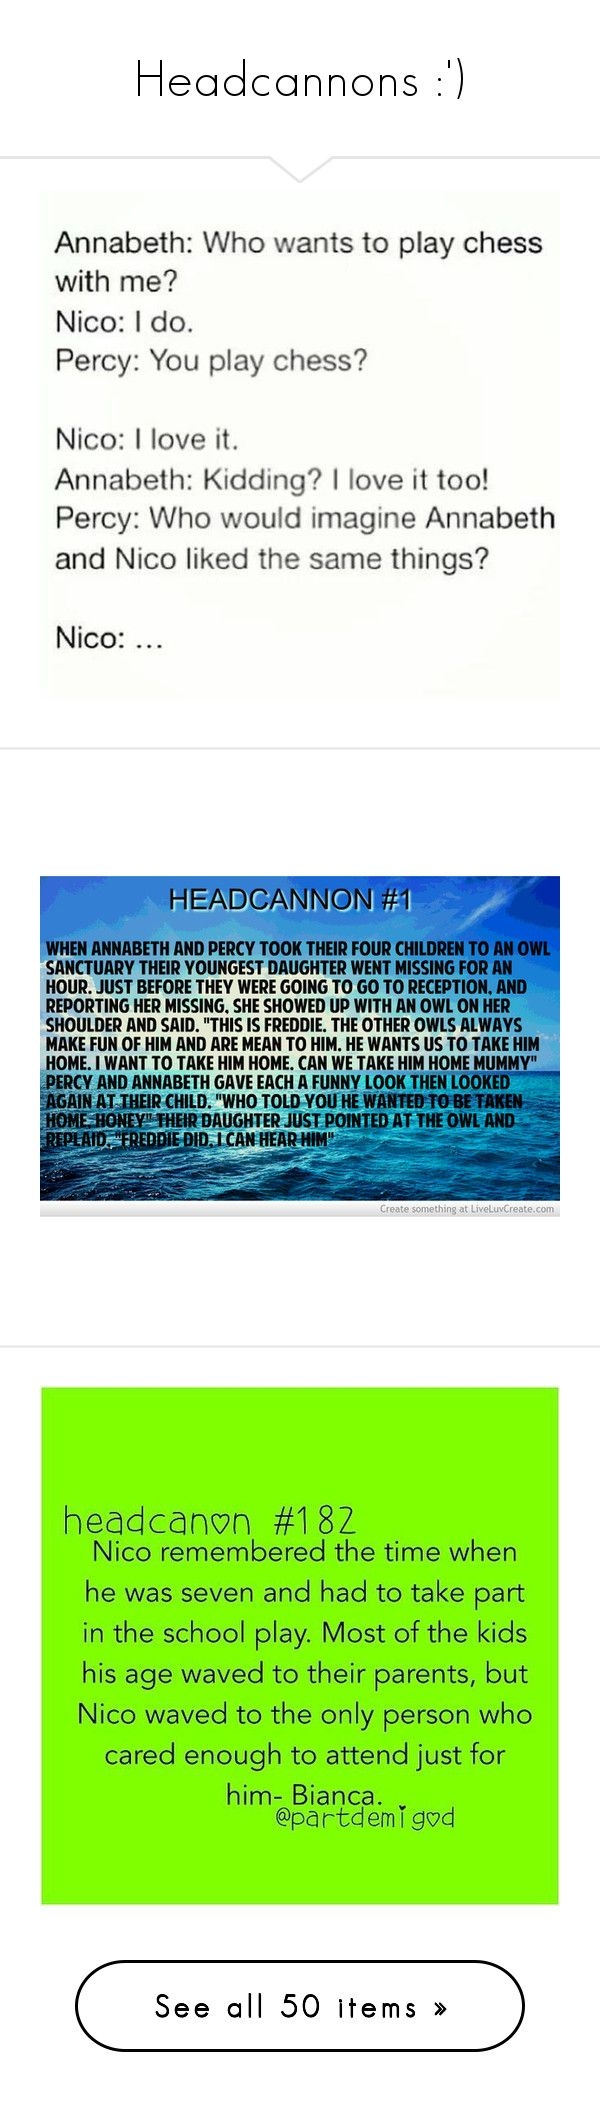 """Headcannons :')"" by anything-but-regular ❤ liked on Polyvore featuring home, home decor, wall art, percy jackson, pjo, phrase, quotes, saying, text and words"